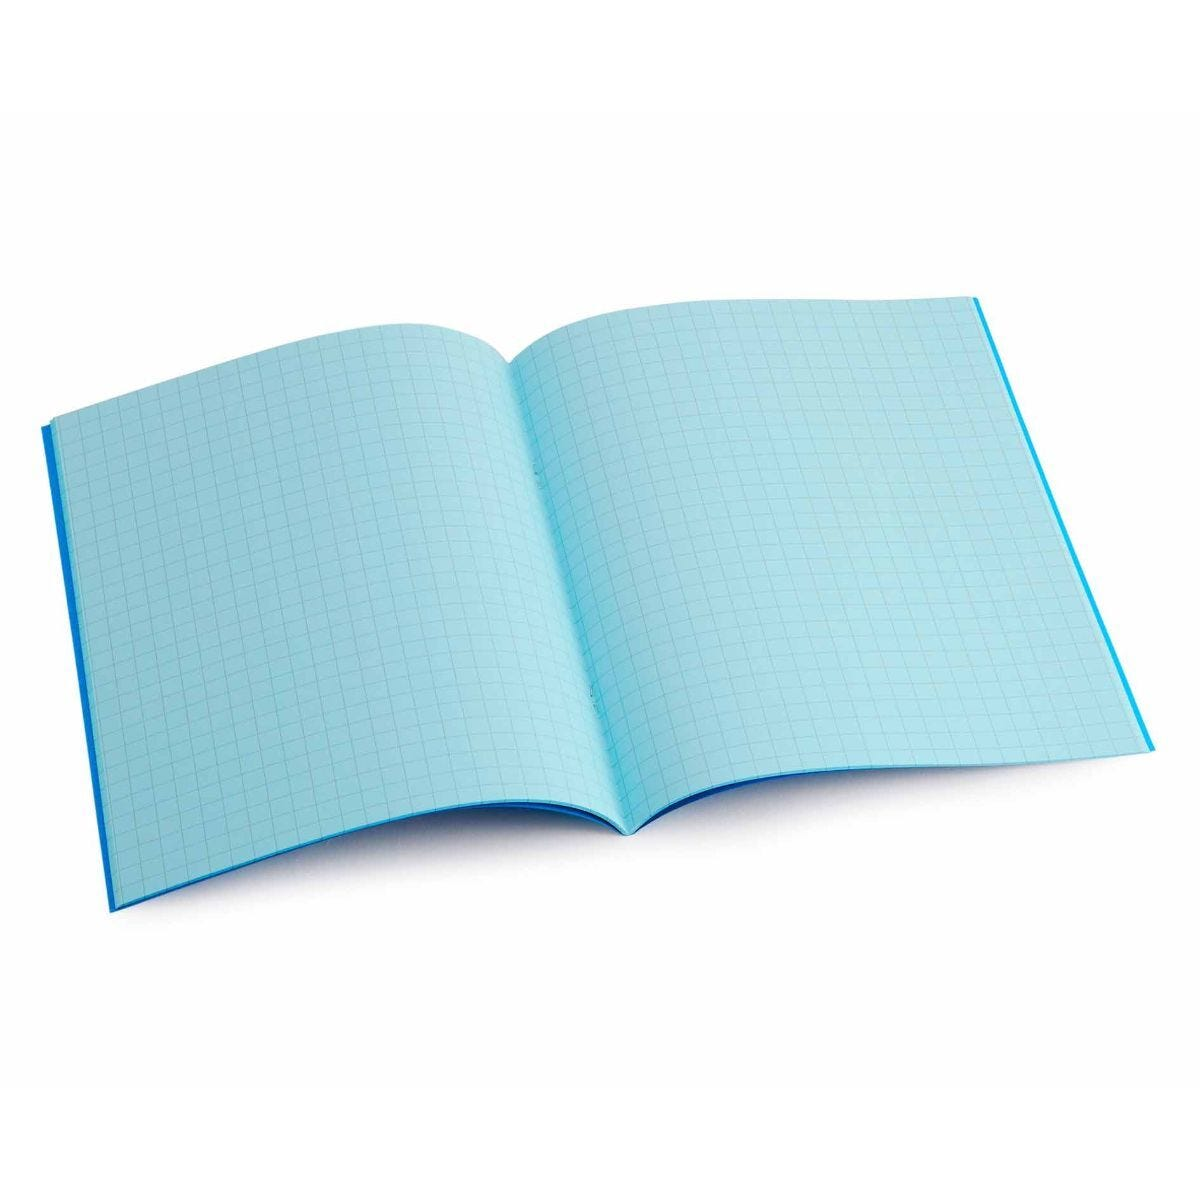 Tinted Exercise Book Standard 7x9 Squared 7.5mm Aqua